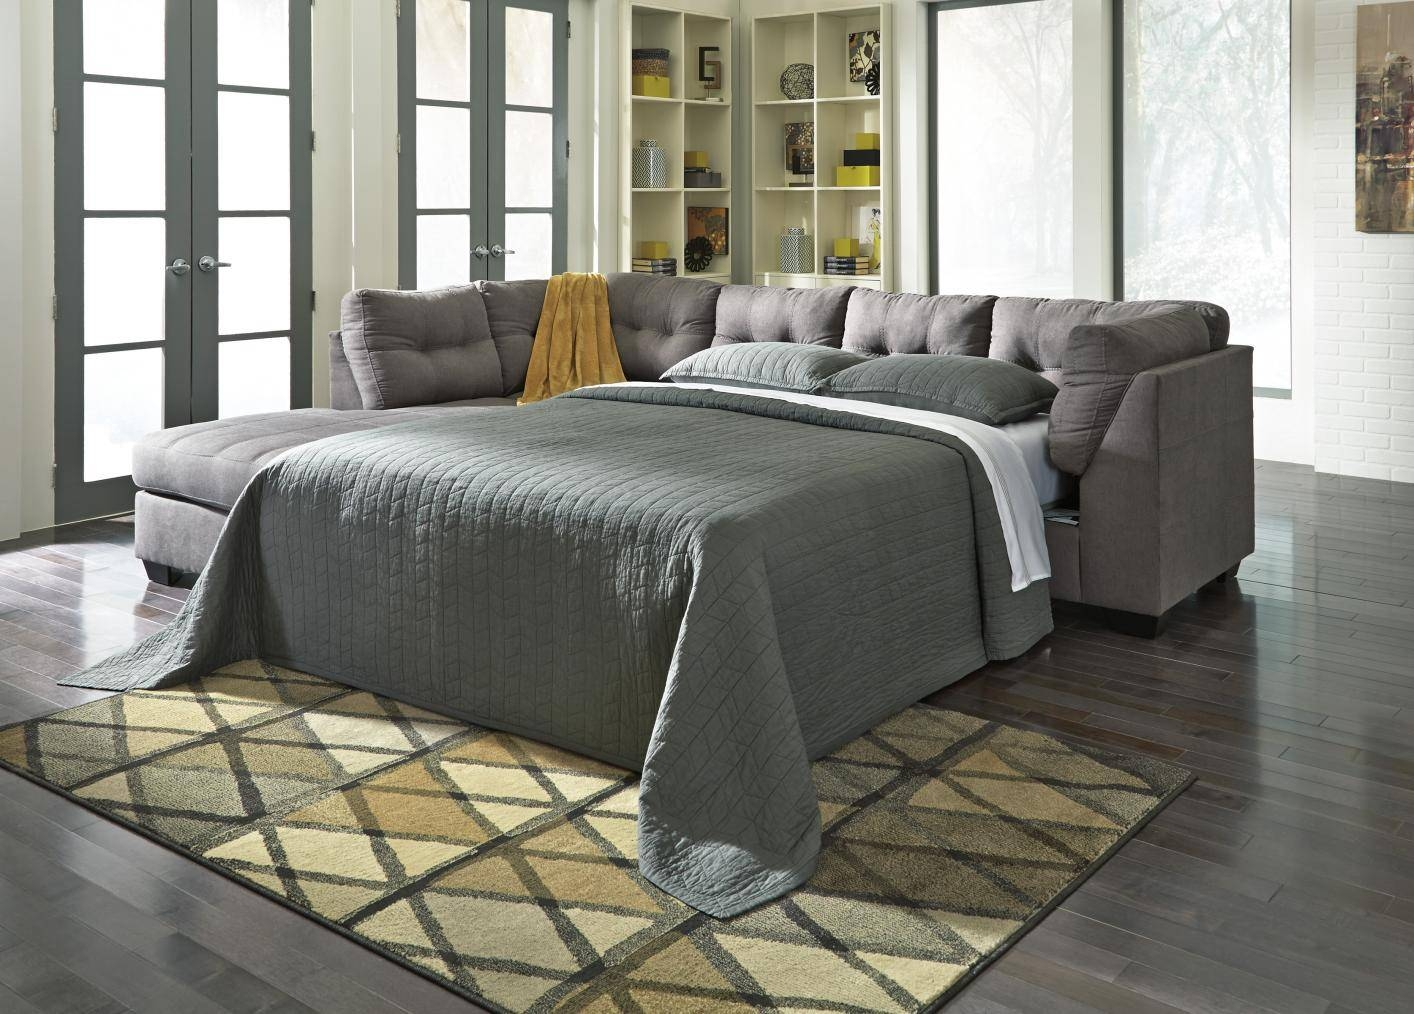 Maier Grey Fabric Sectional Sleeper Sofa - Steal-A-Sofa Furniture with regard to Ashley Tufted Sofa (Image 17 of 30)